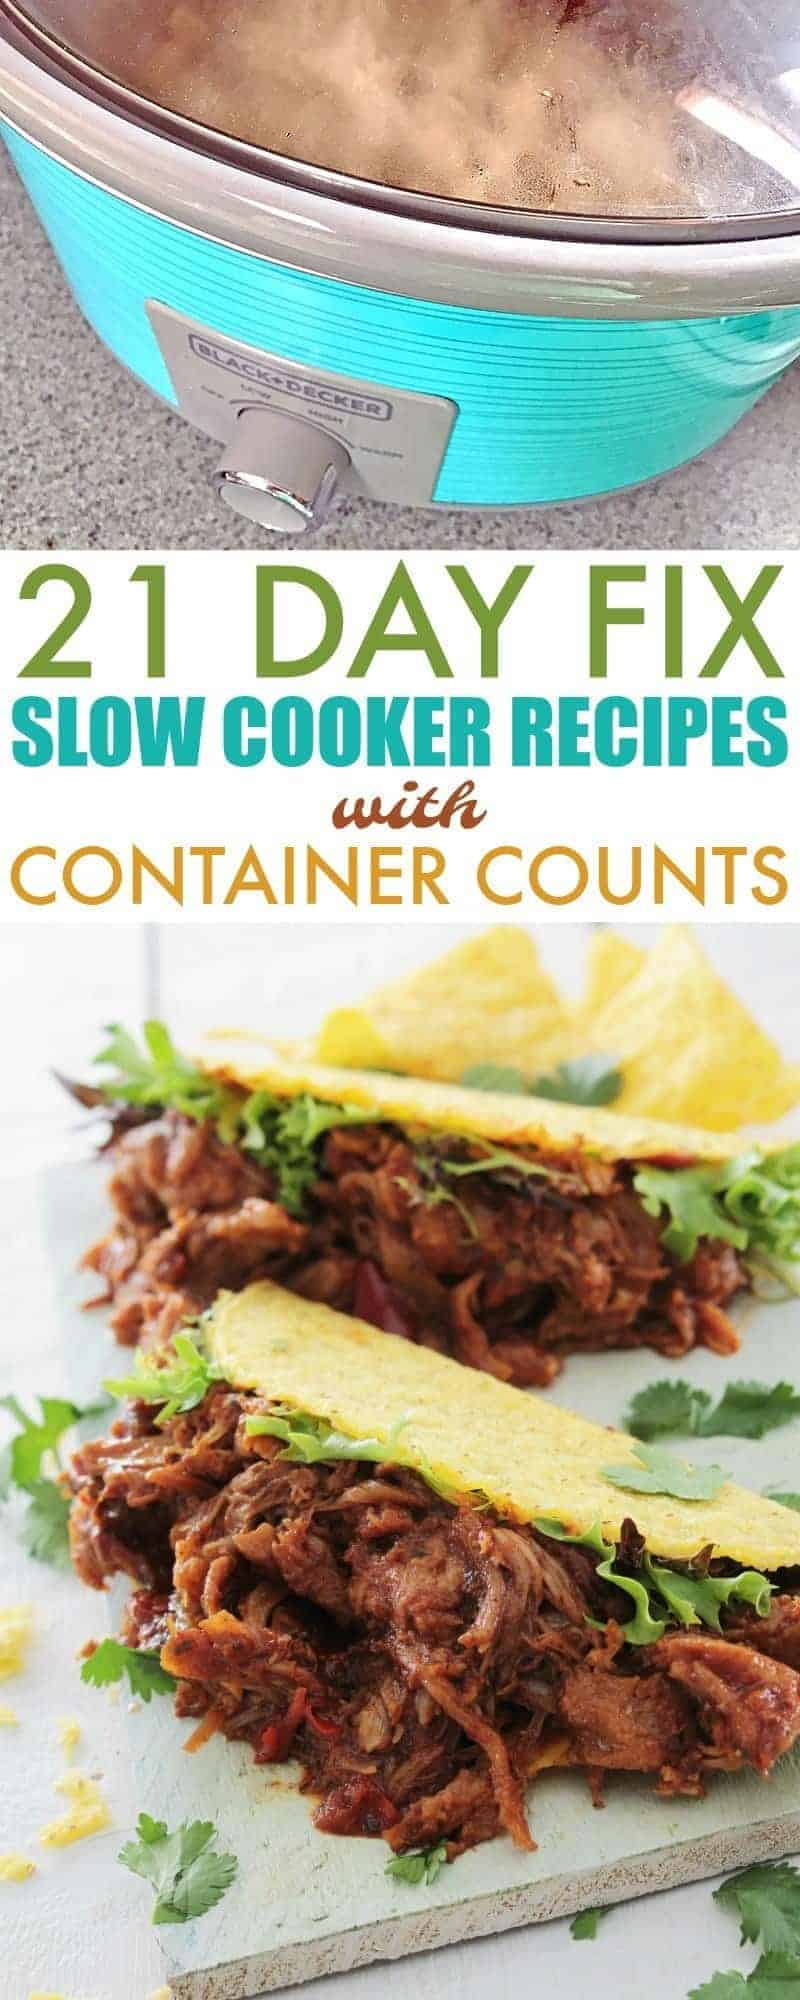 Easily plan your meals with this list of delicious 21 Day Fix Slow Cooker Recipes with Container Counts perfect for family meals.